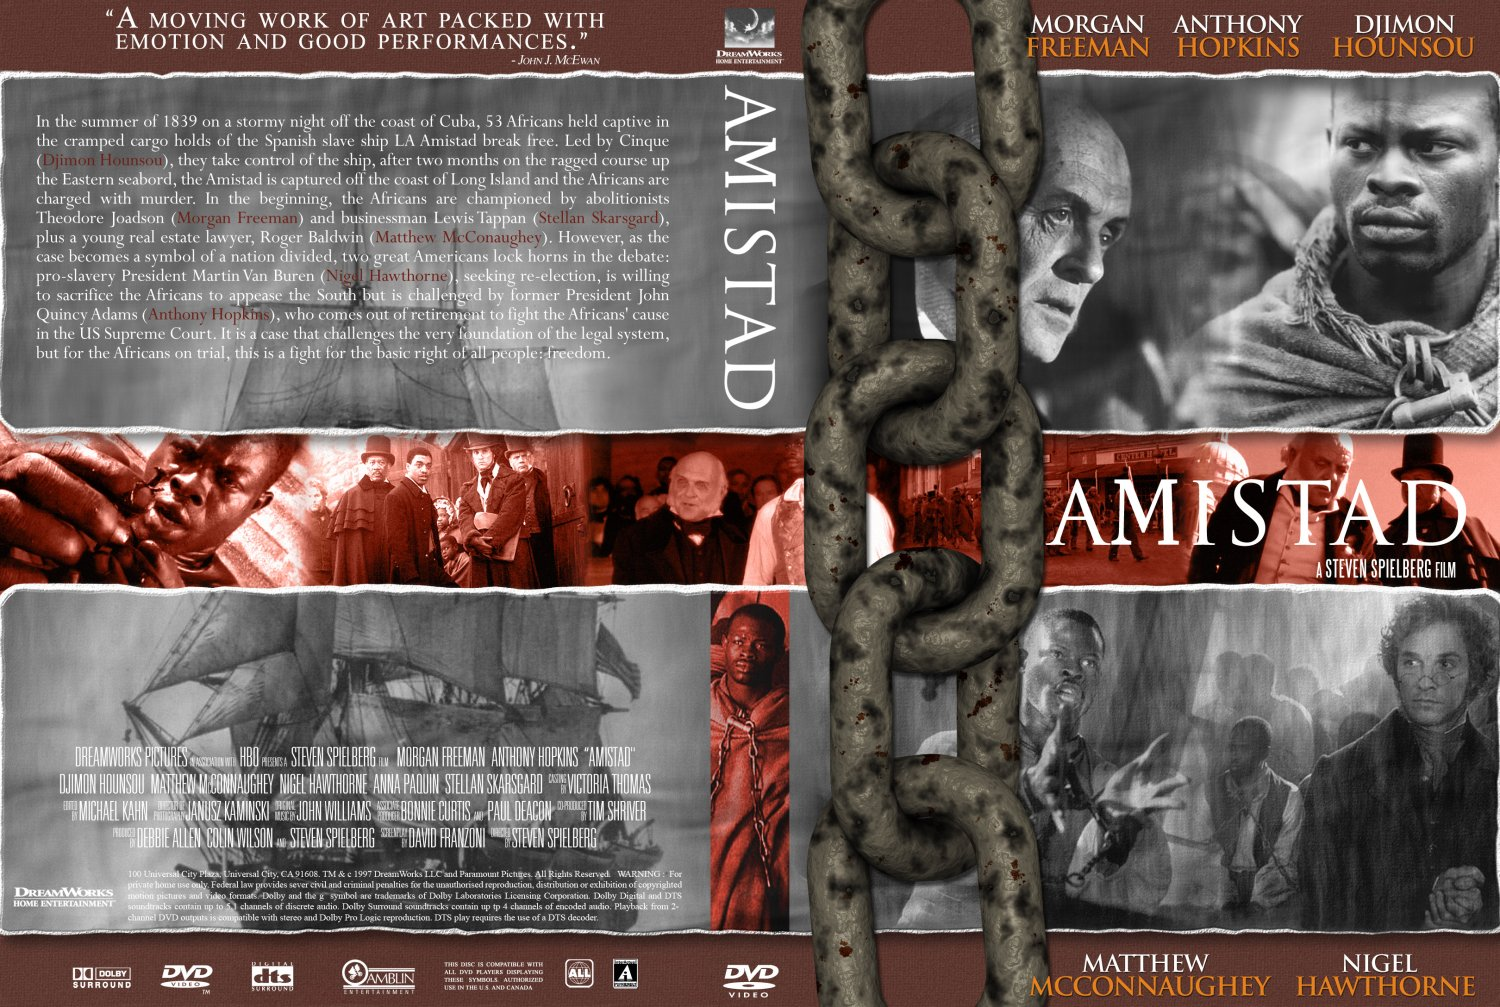 amistad movie Amistad, the motion picture amistad is director steven spielberg's debut motion picture at dreamworks skg the film is due to be released wednesday, december 10th in new york and los angeles and friday, december 12th nationwide however, a motion for preliminary injunction by barbara chase-riboud could postpone the release.